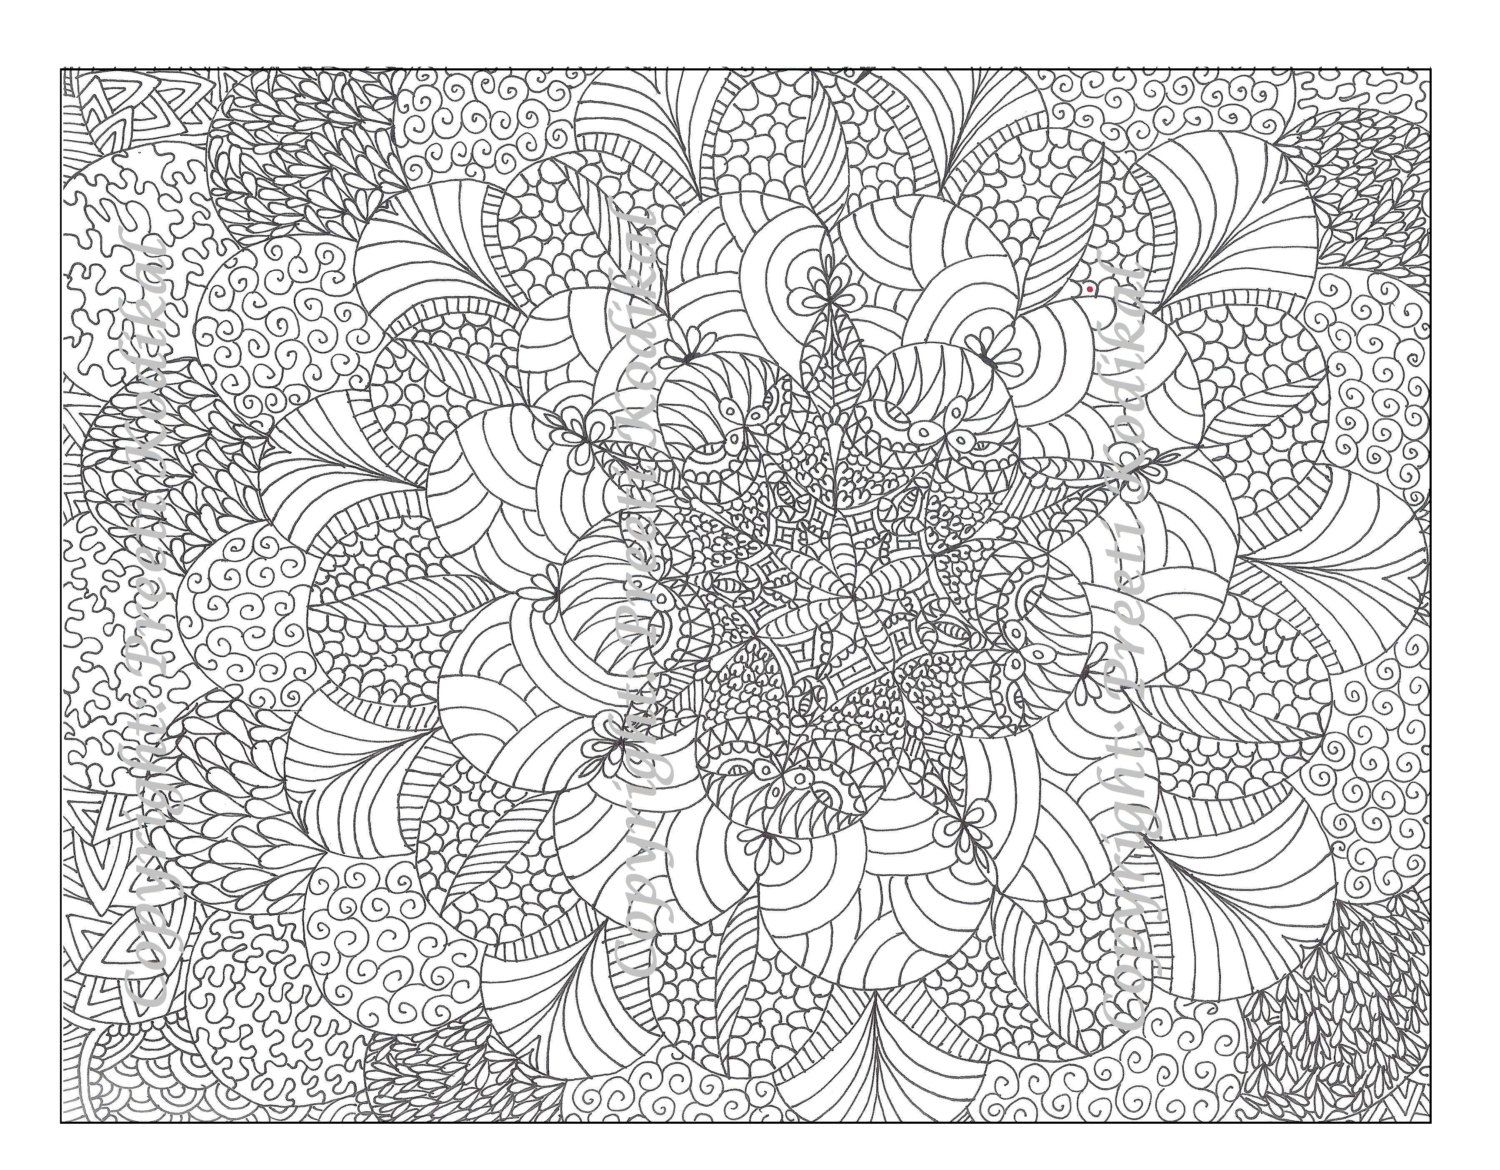 Difficult but Fun Coloring Pages Free and Printable | Mandala ... | 1170x1500